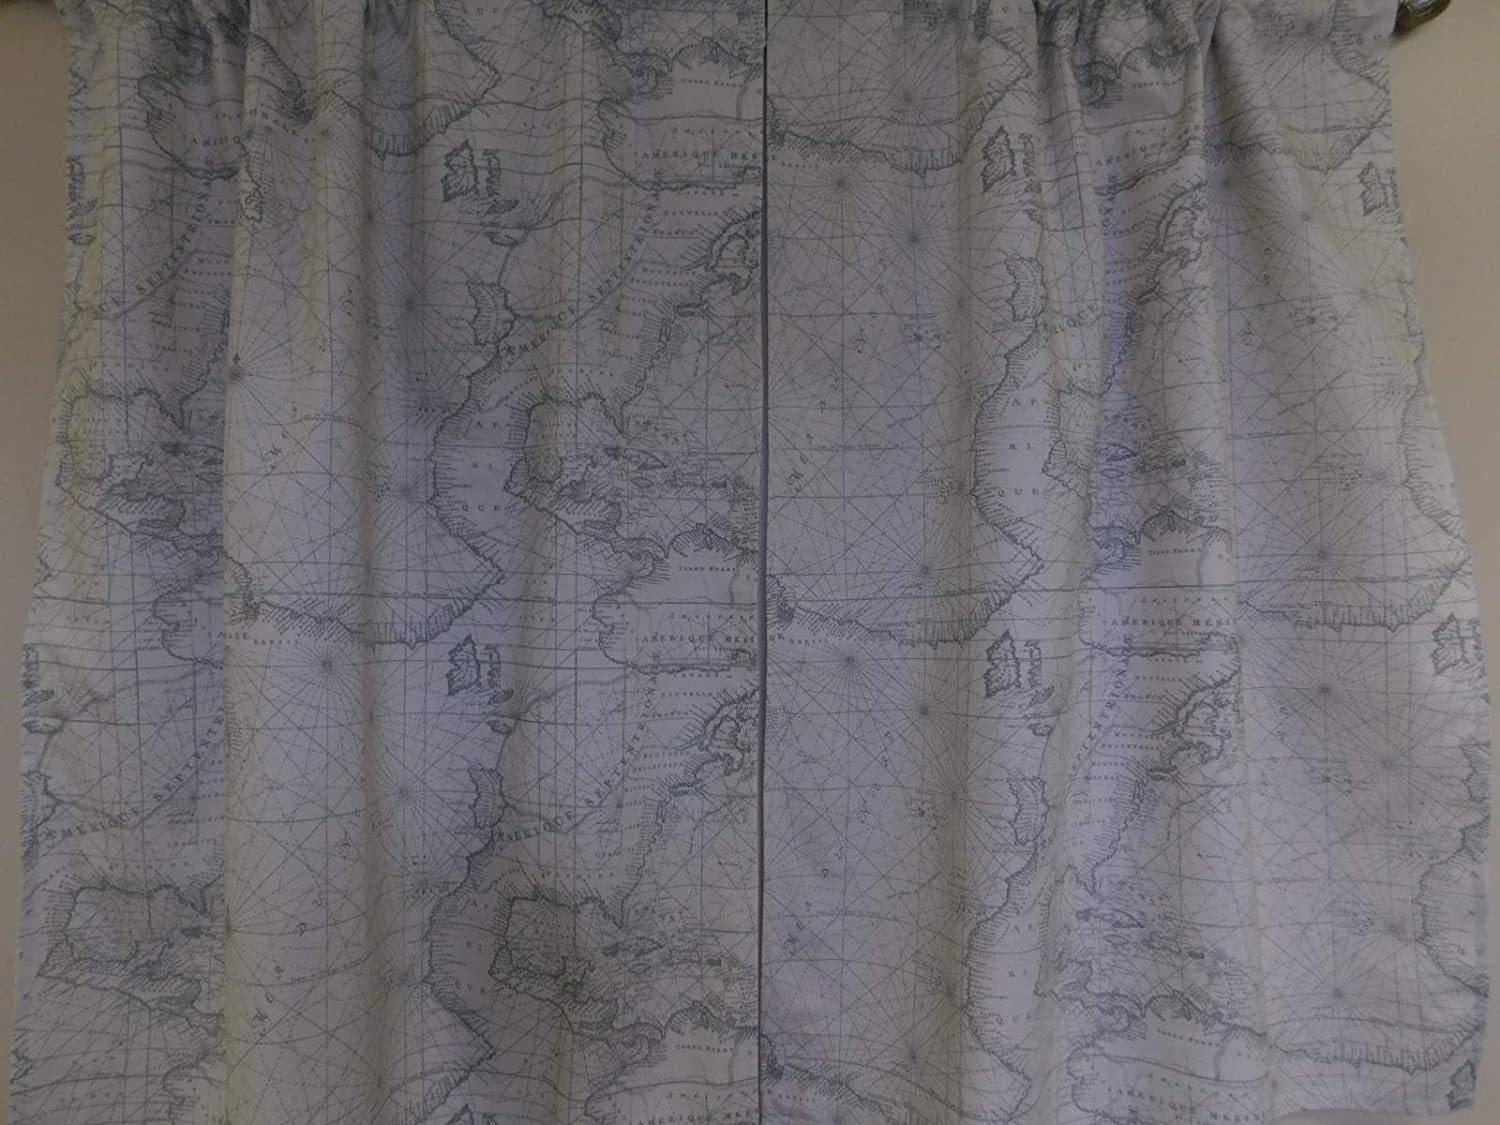 World map curtain - 2 panels/Tiers - Window/Kitchen, Bath, Laundry, basement, office kids daycare, cafe style country, grey and off-white, restaurant curtains 32L